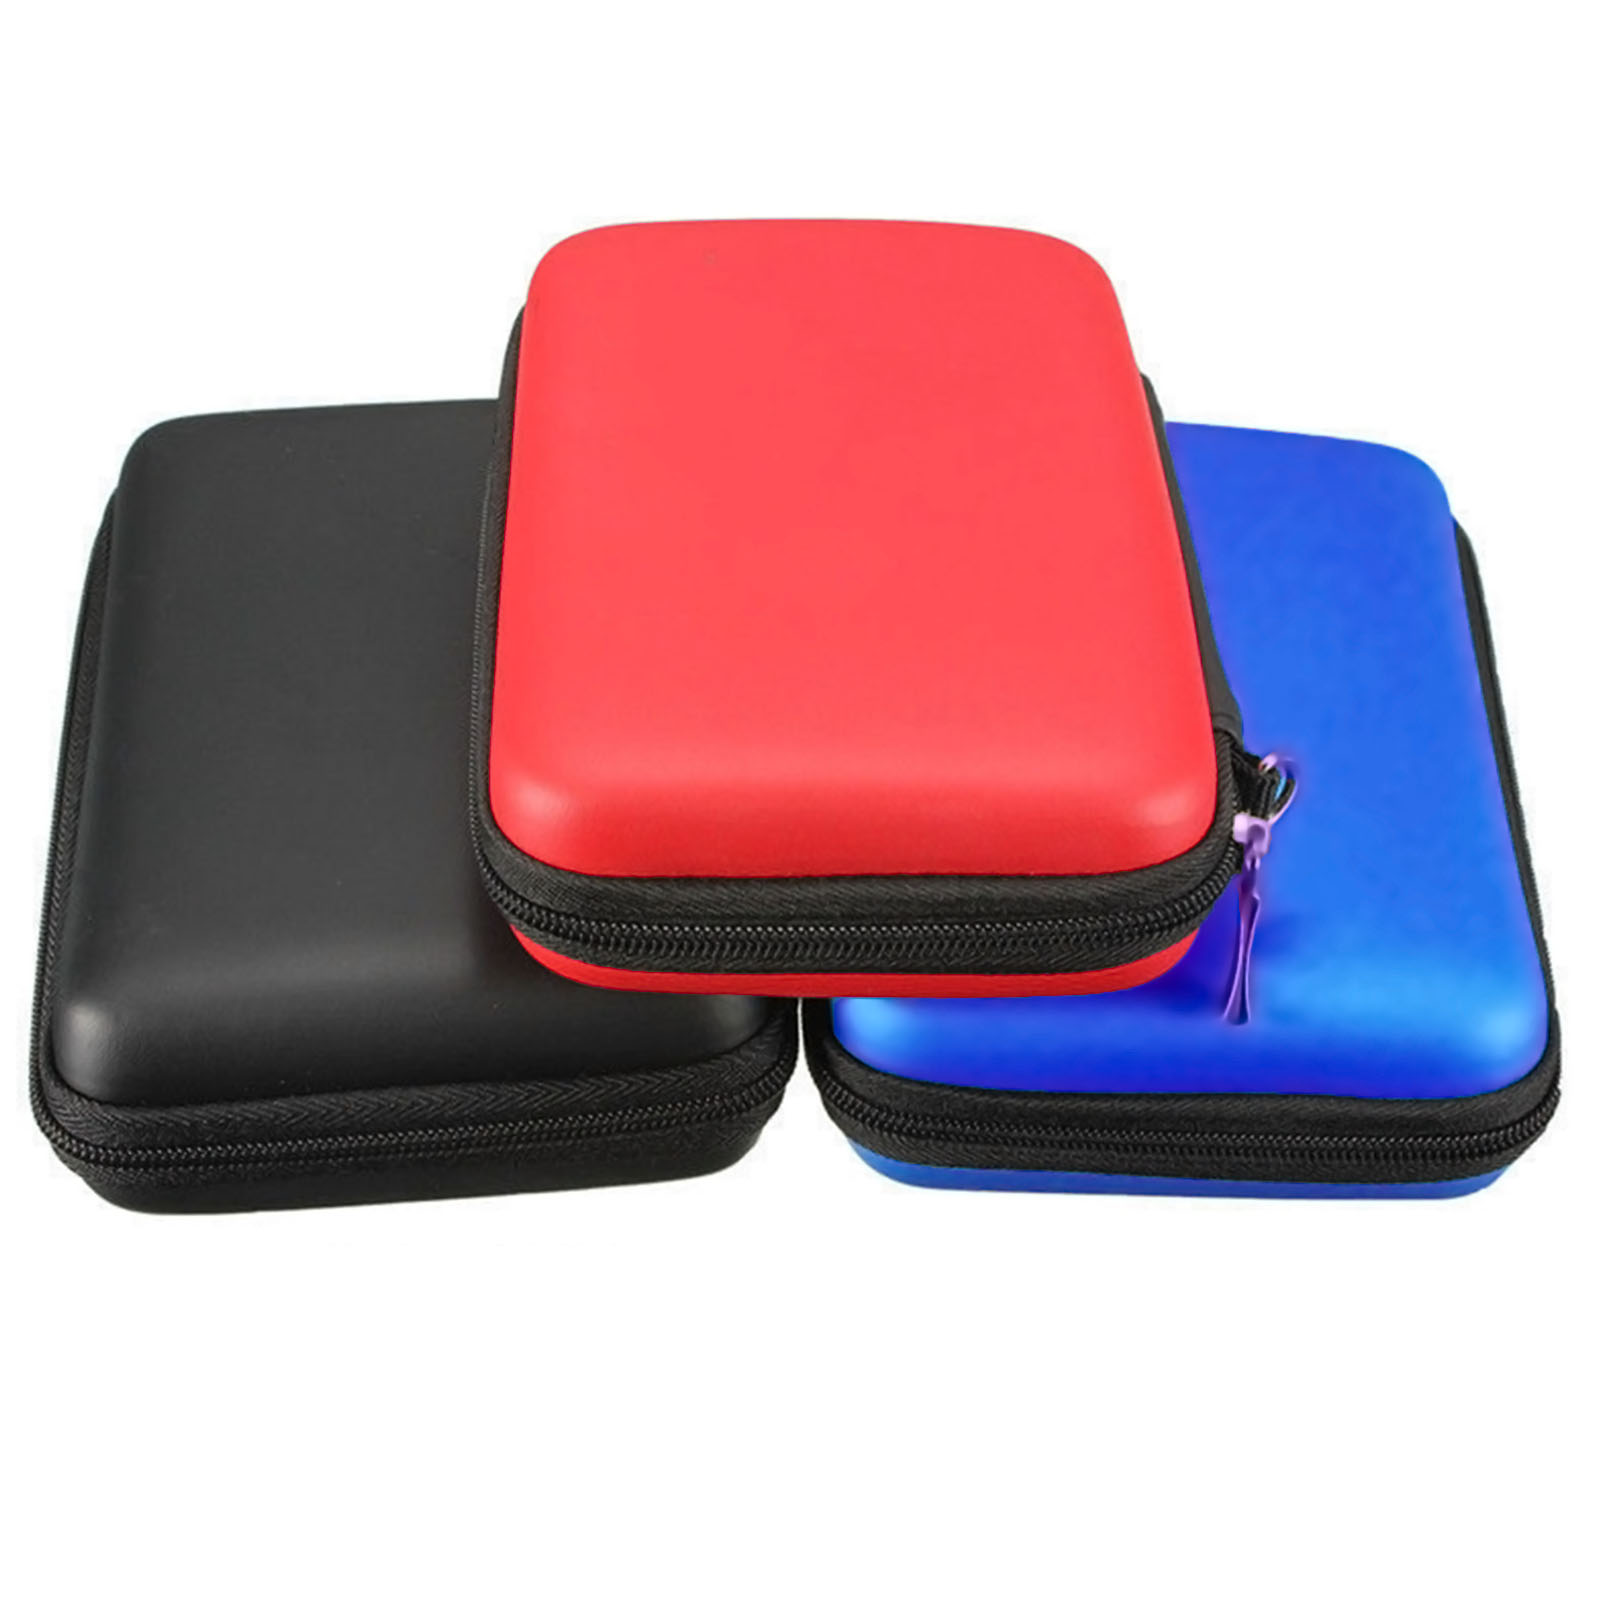 3DS/2DS/DSi Cases & Covers